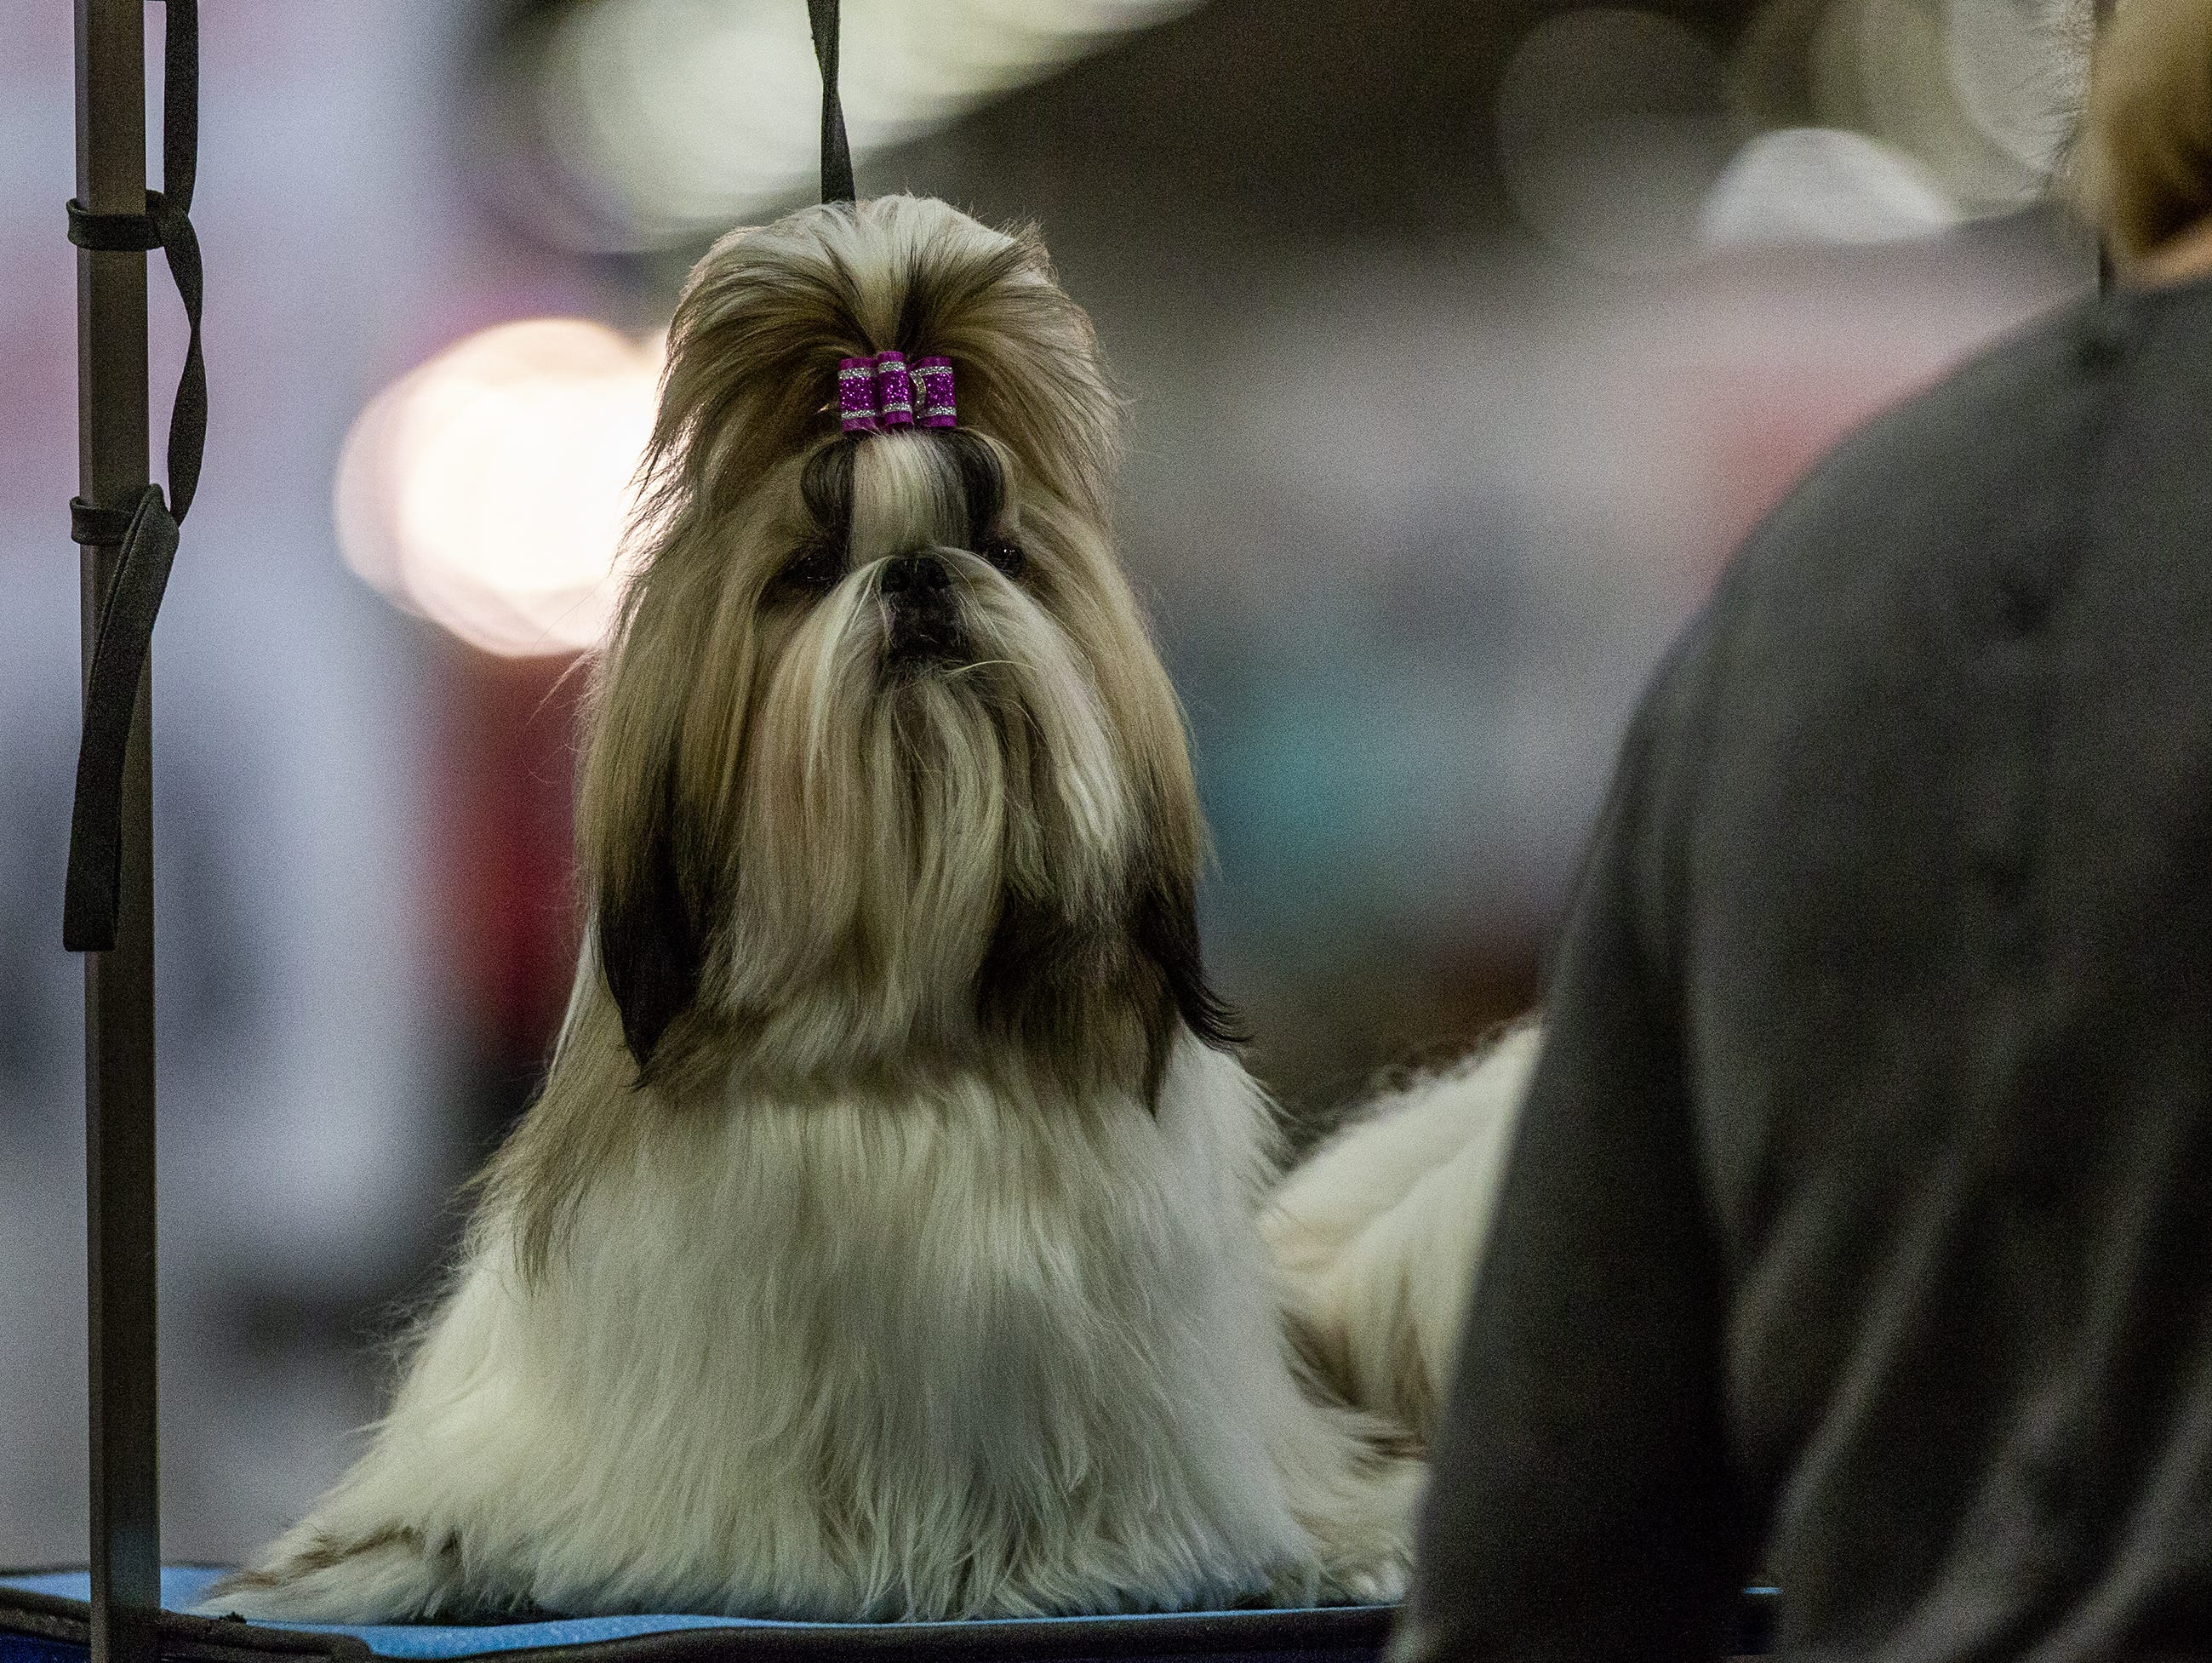 Pancy, a Shih Tzu, stands tall after having a ribbon put in her hair at the 2019 Kentuckiana Cluster of Dog Shows at the Kentucky Exposition Center. March 14, 2019.